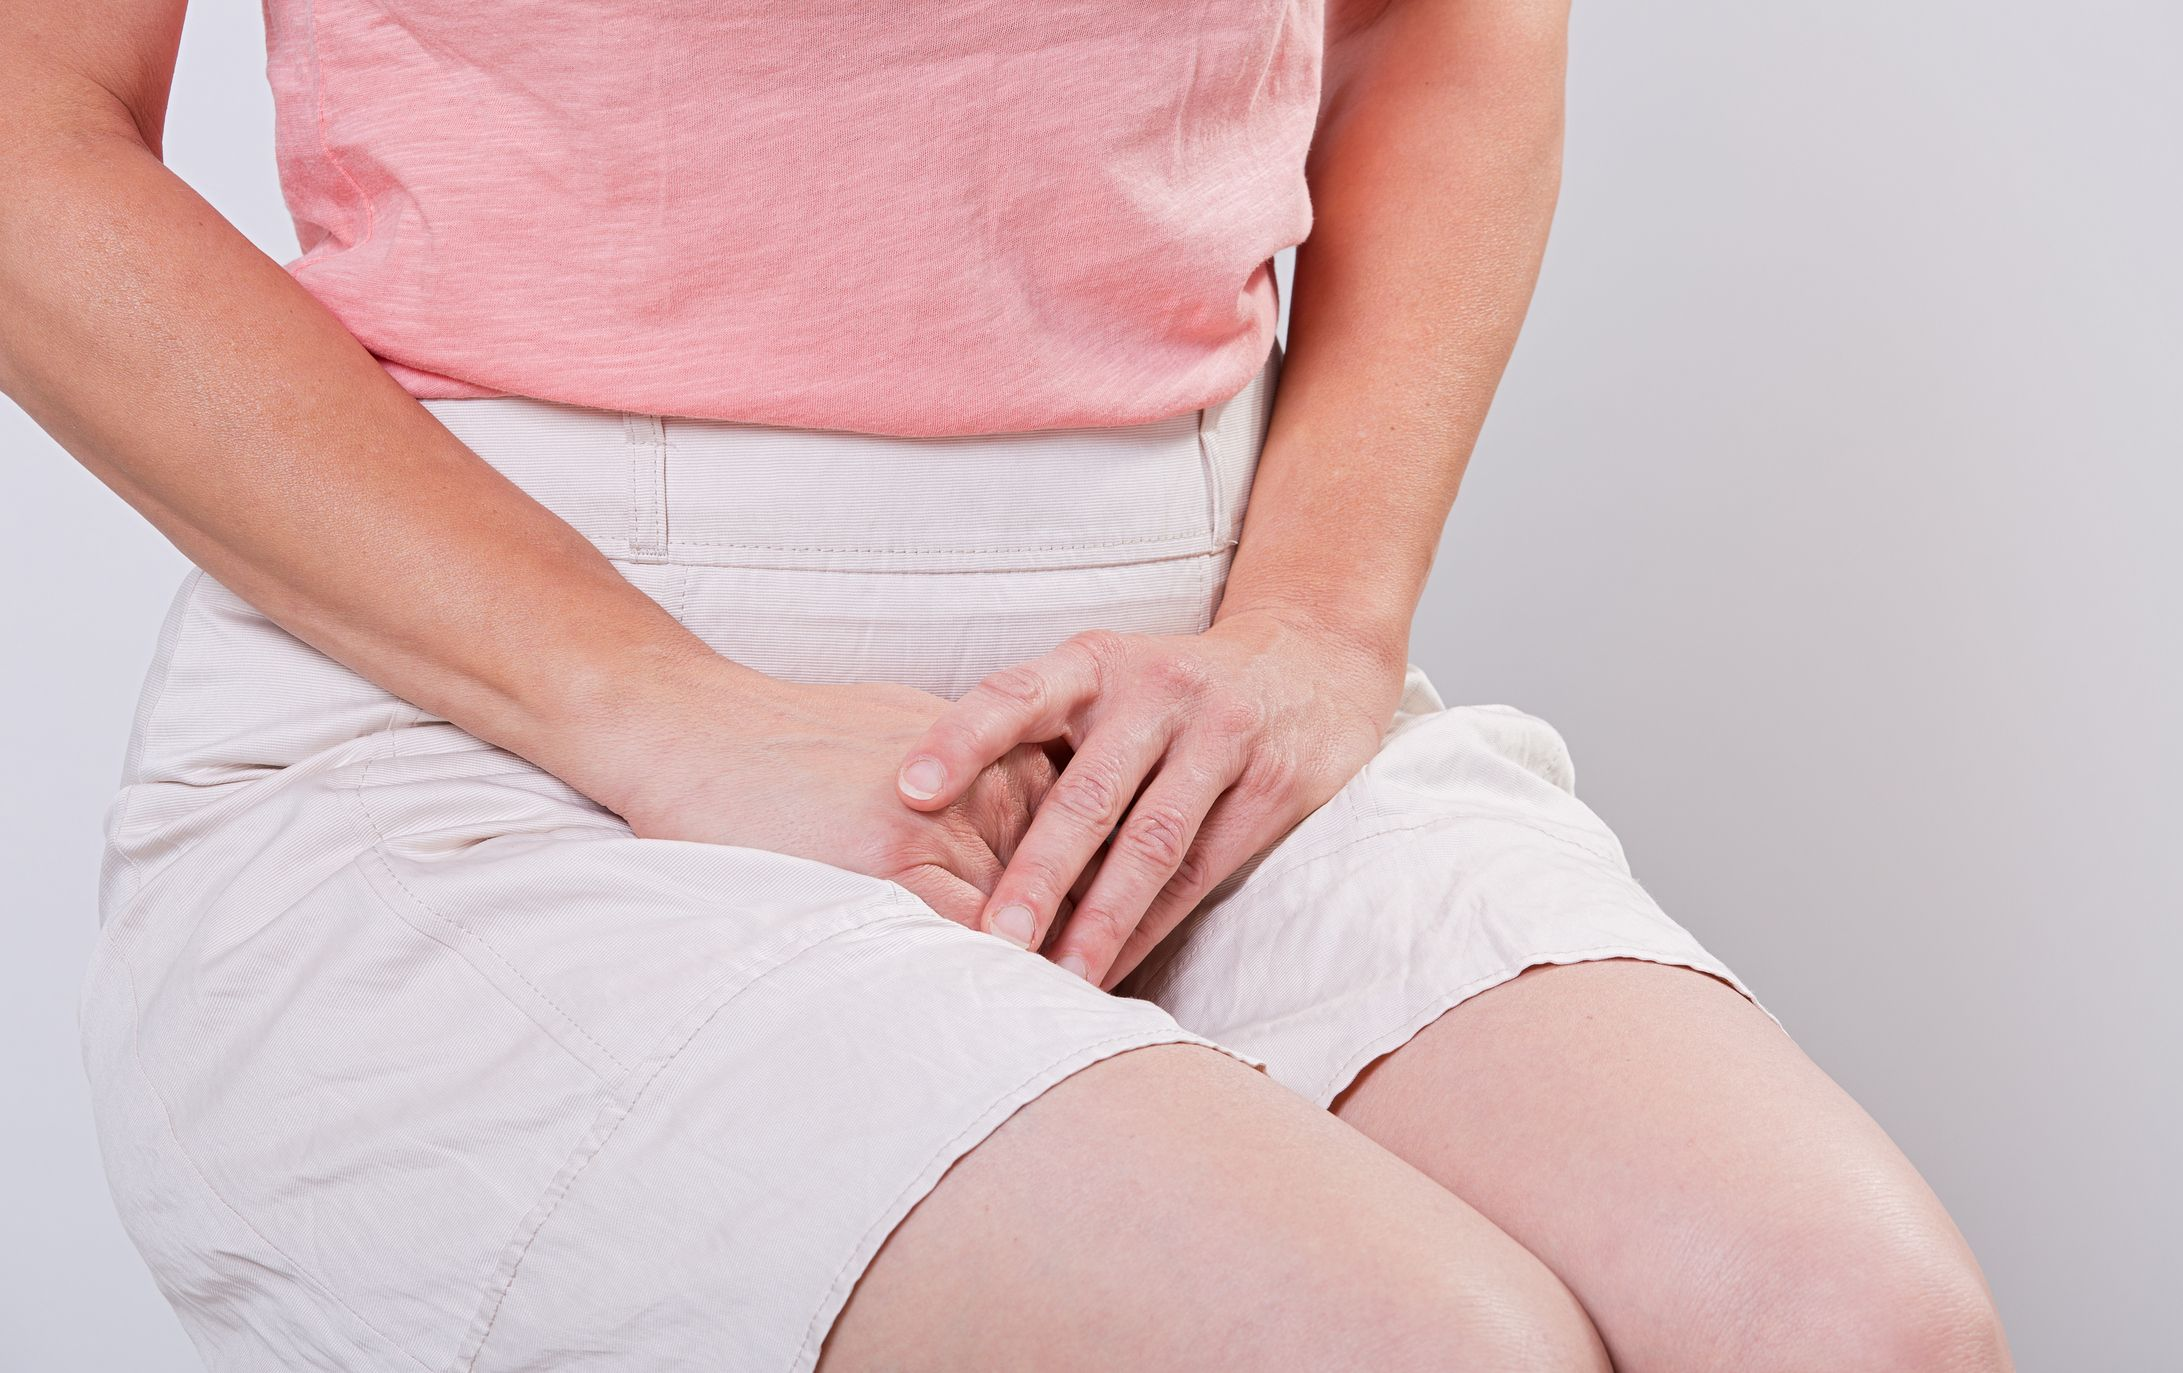 Reasons for Ovulation Pain - Ovulation Pain Causes and Treatment